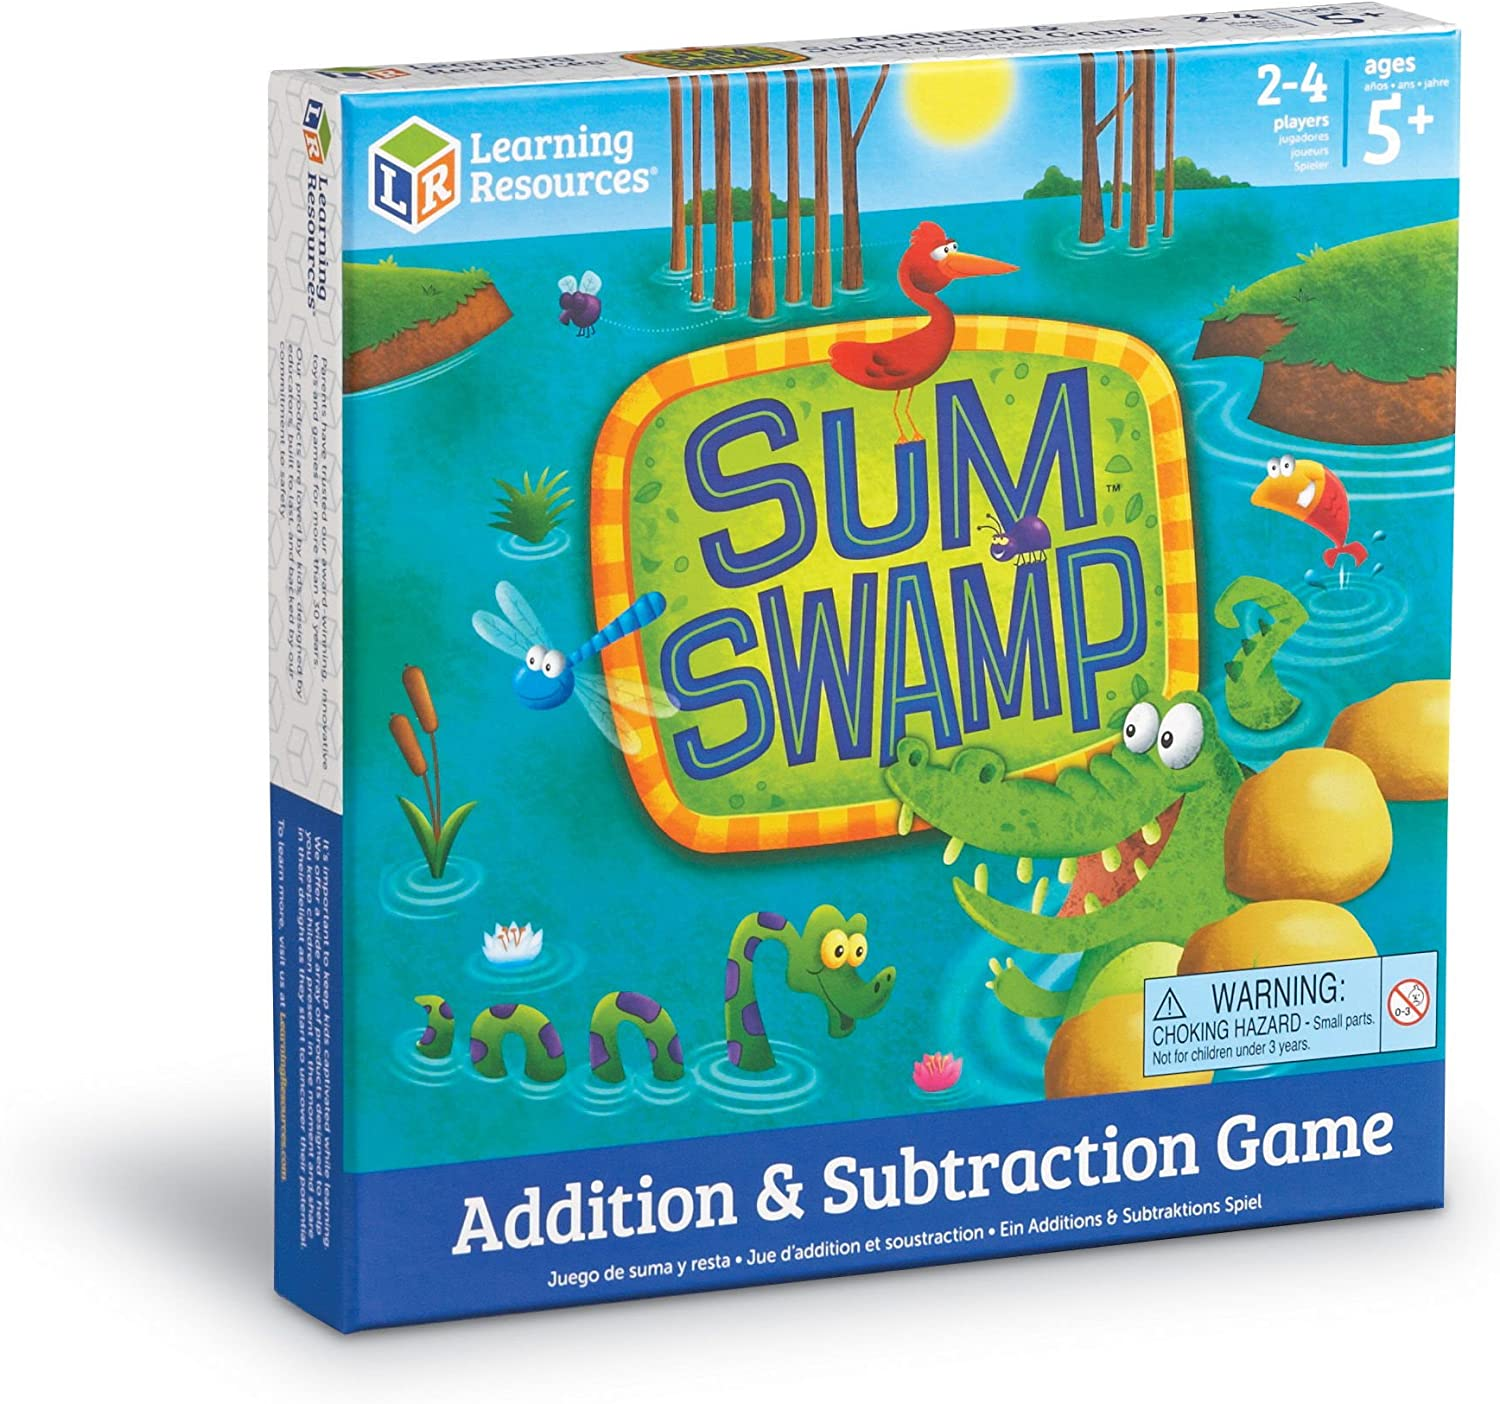 B00004TDLD Learning Resources Sum Swamp Game, Addition/Subtraction, Early Math Skills, 8 Pieces, Ages 5+ 81kjXLLlB1L